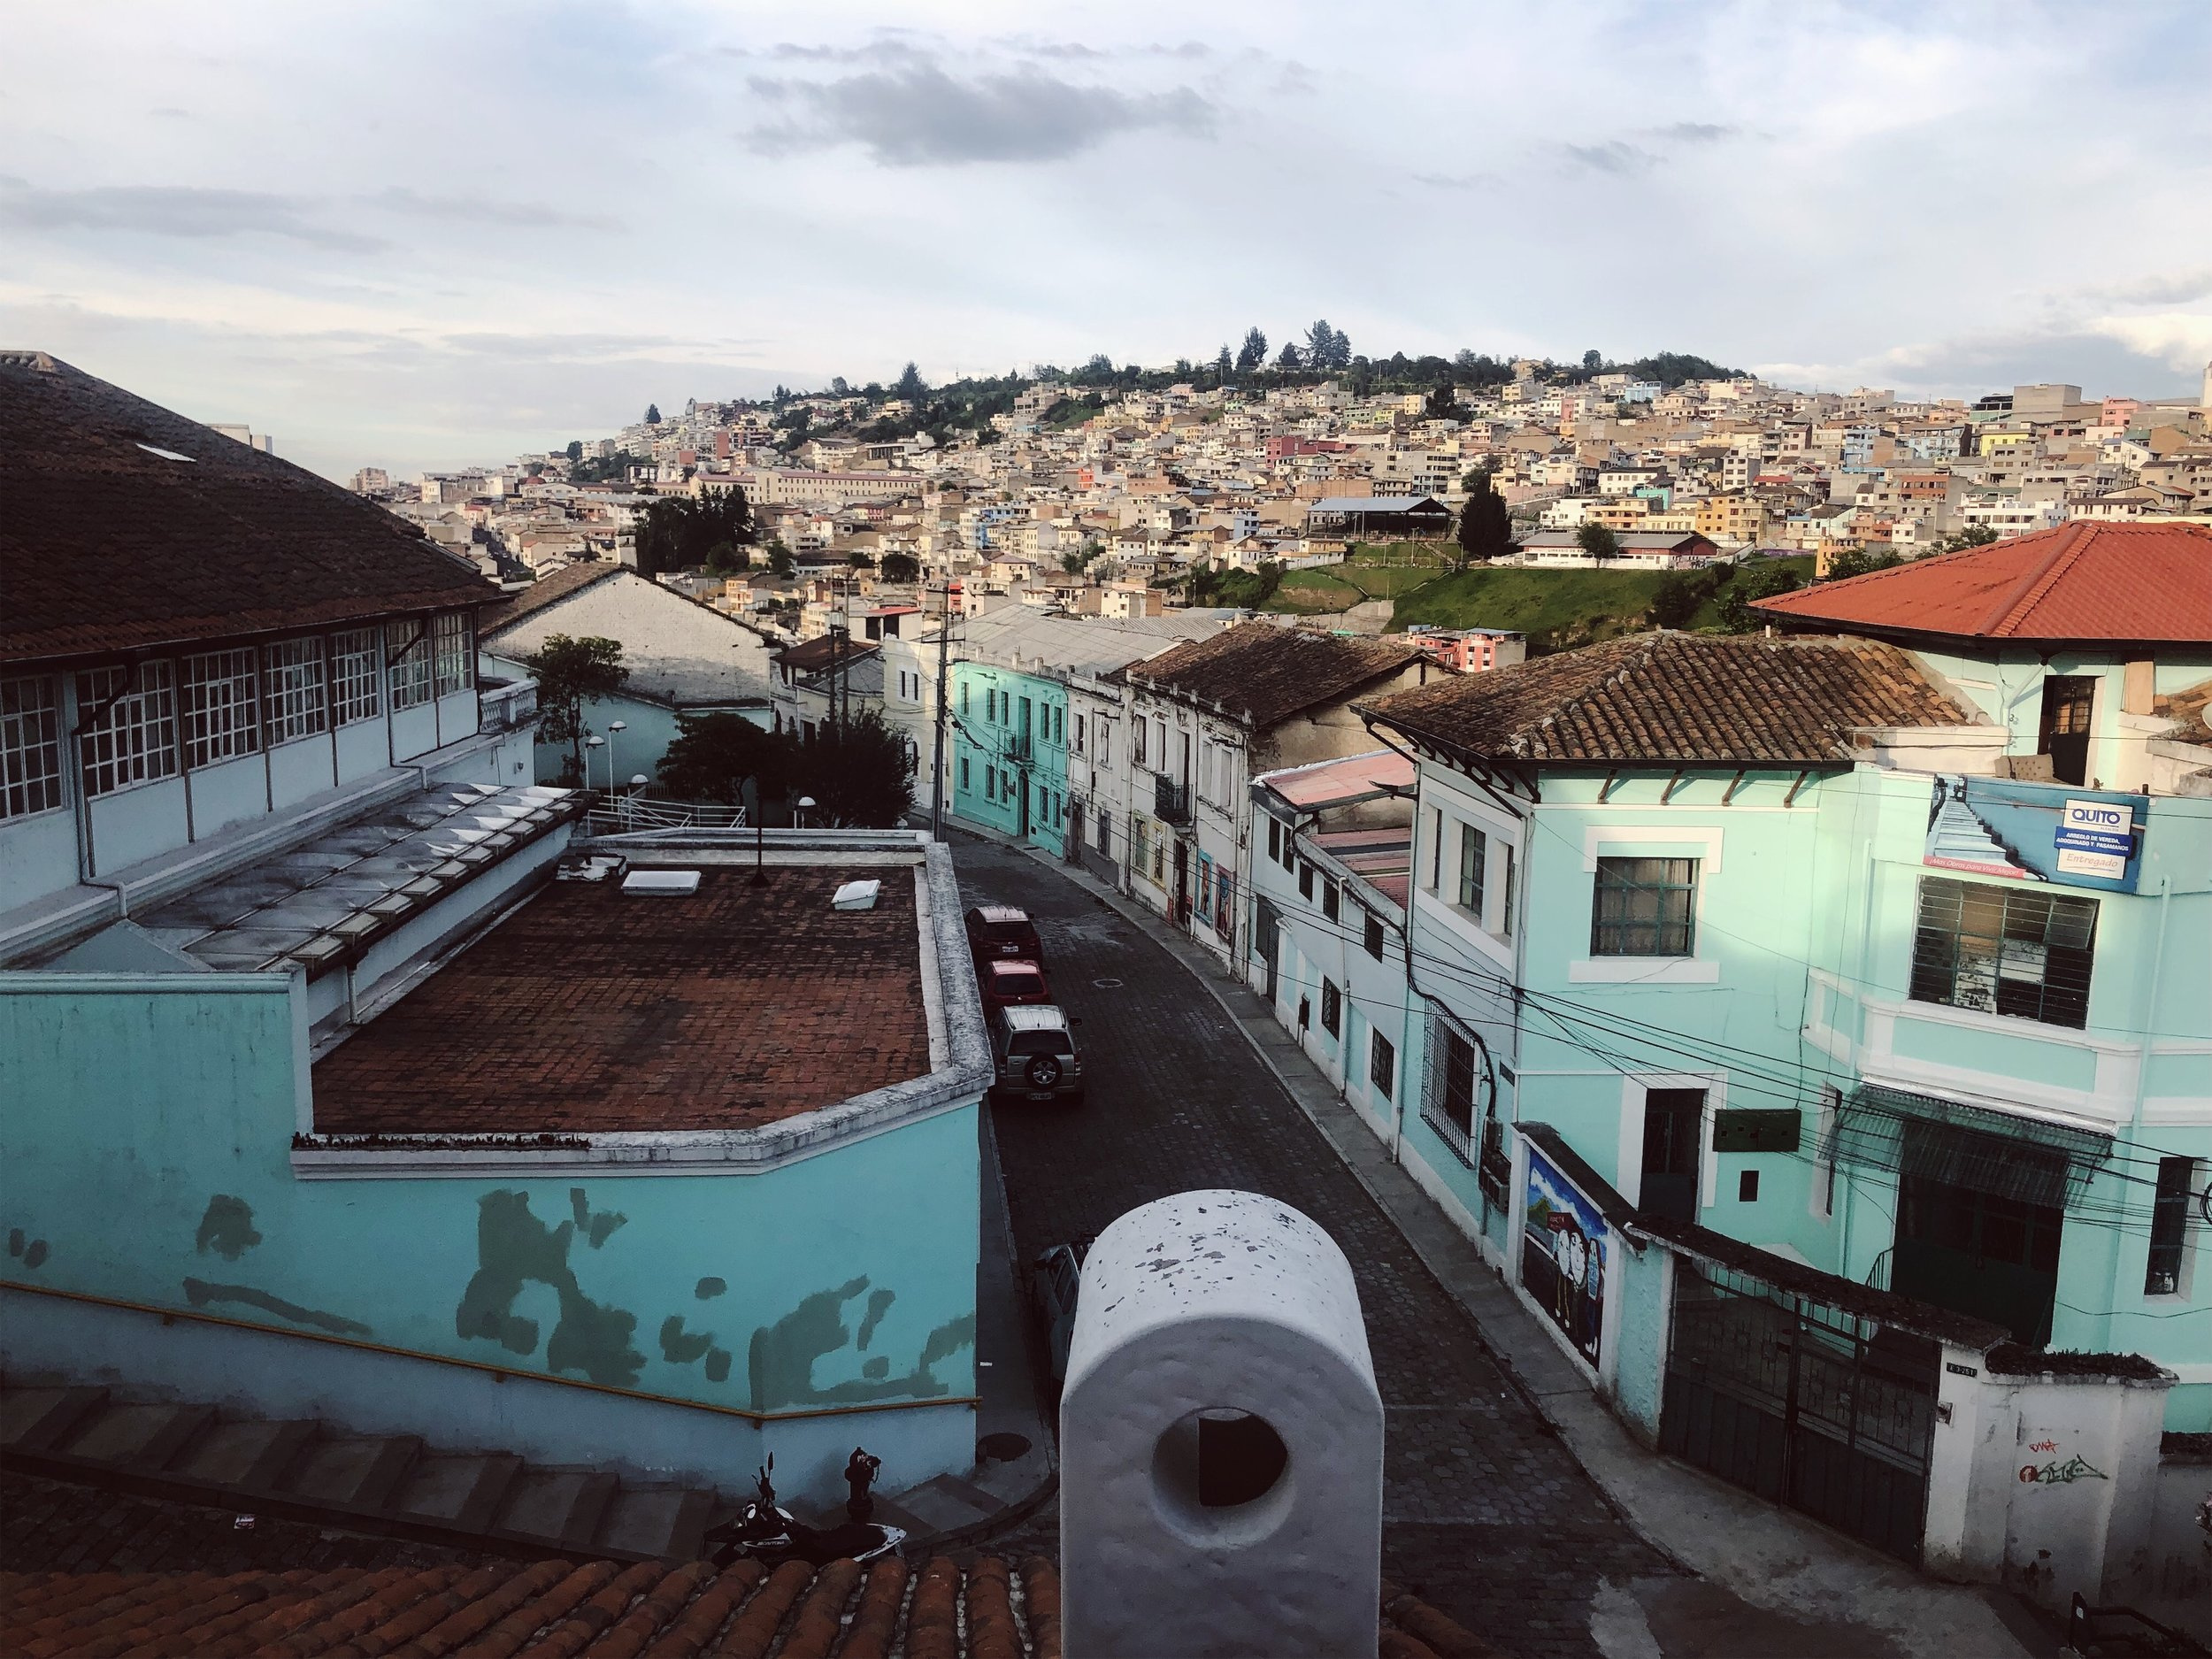 Views of Quito as we enter the city